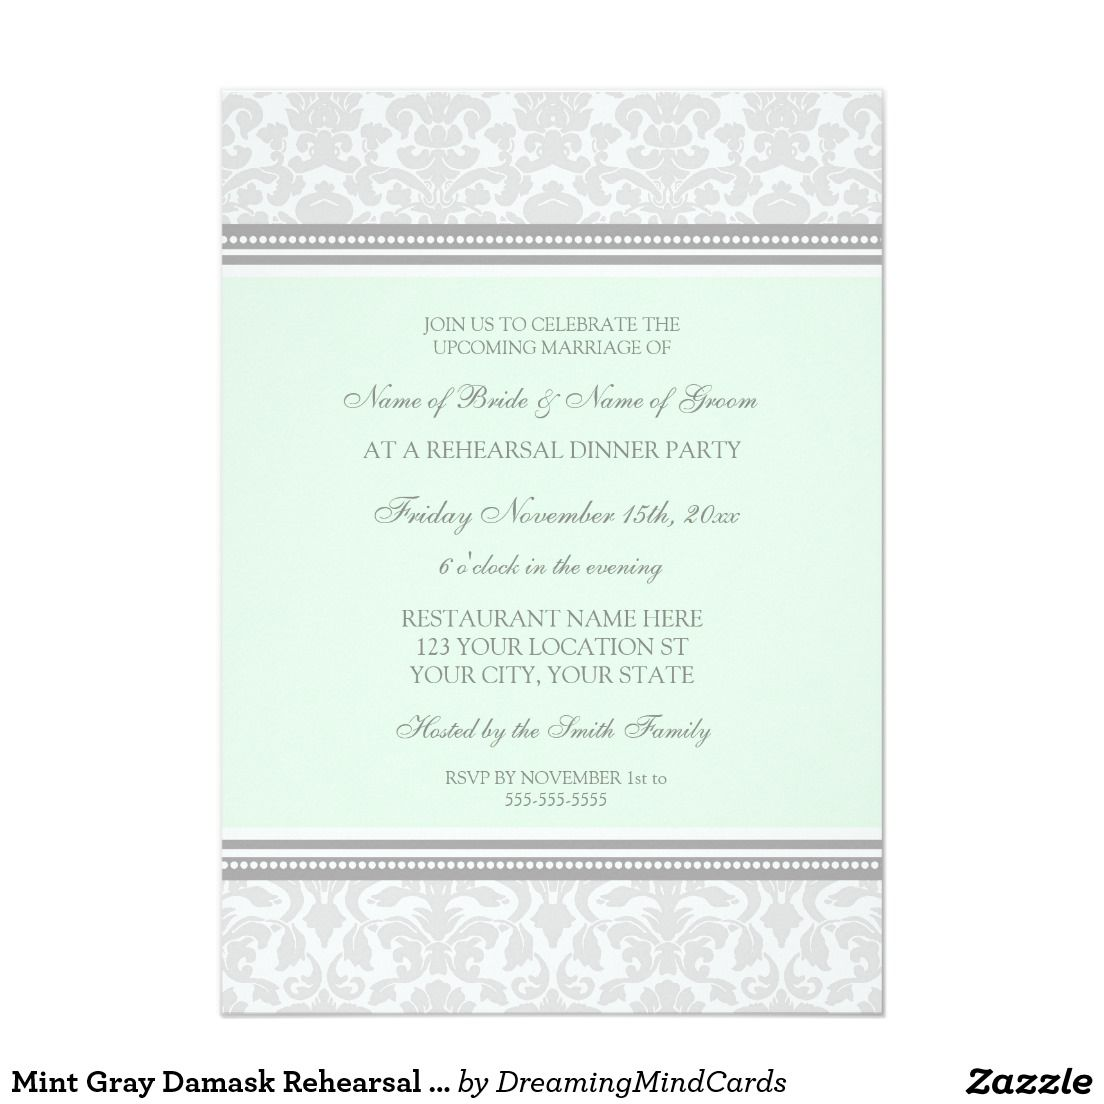 Mint Gray Damask Rehearsal Dinner Party 5x7 Paper Invitation Card ...